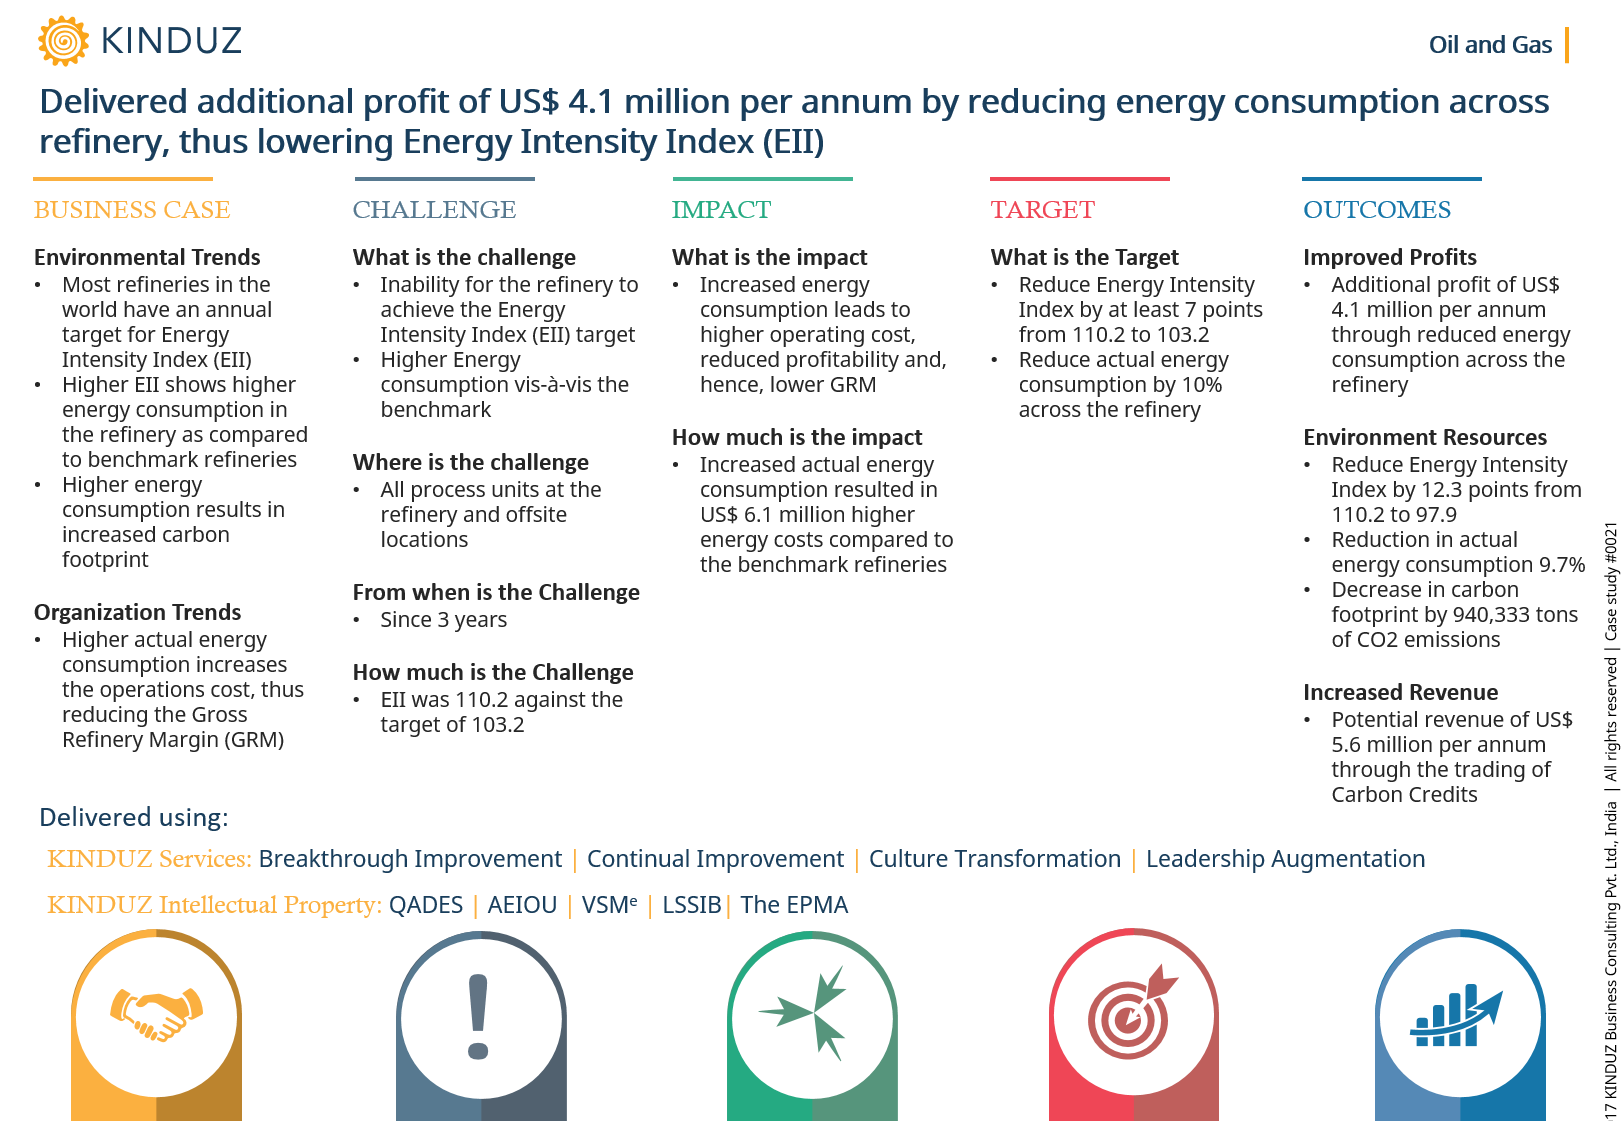 delivered-additional-profit-of-us-4.1-million-per-annum-by-reducing-energy-consumption-across-refinery-thus-lowering-energy-intensity-index-eii